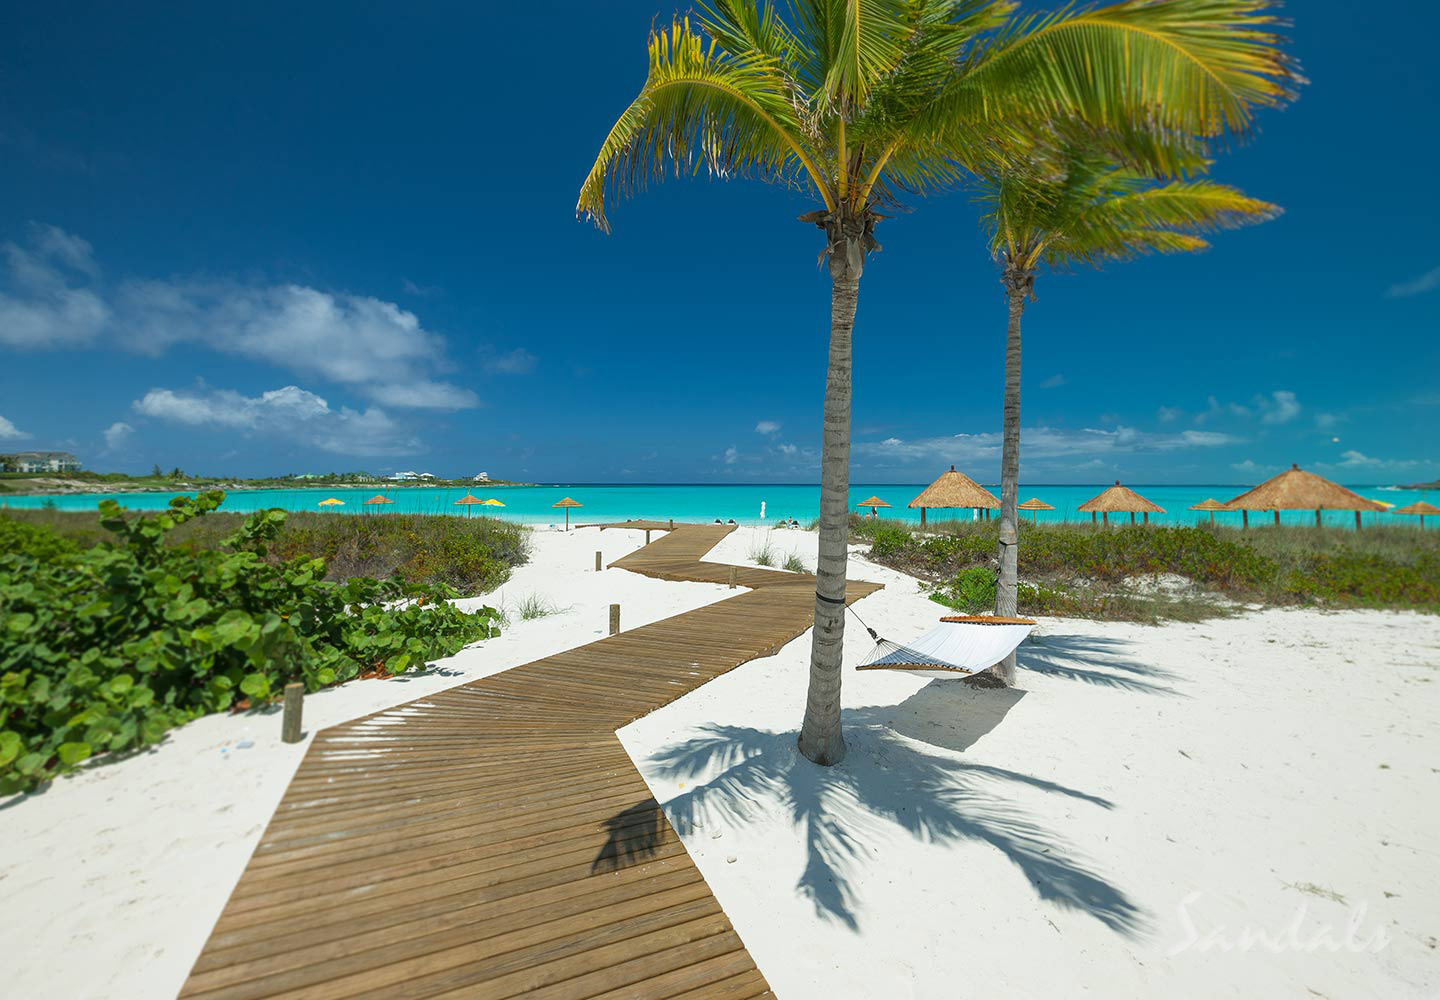 Travel Agency All-Inclusive Resort Sandals Emerald Bay 011